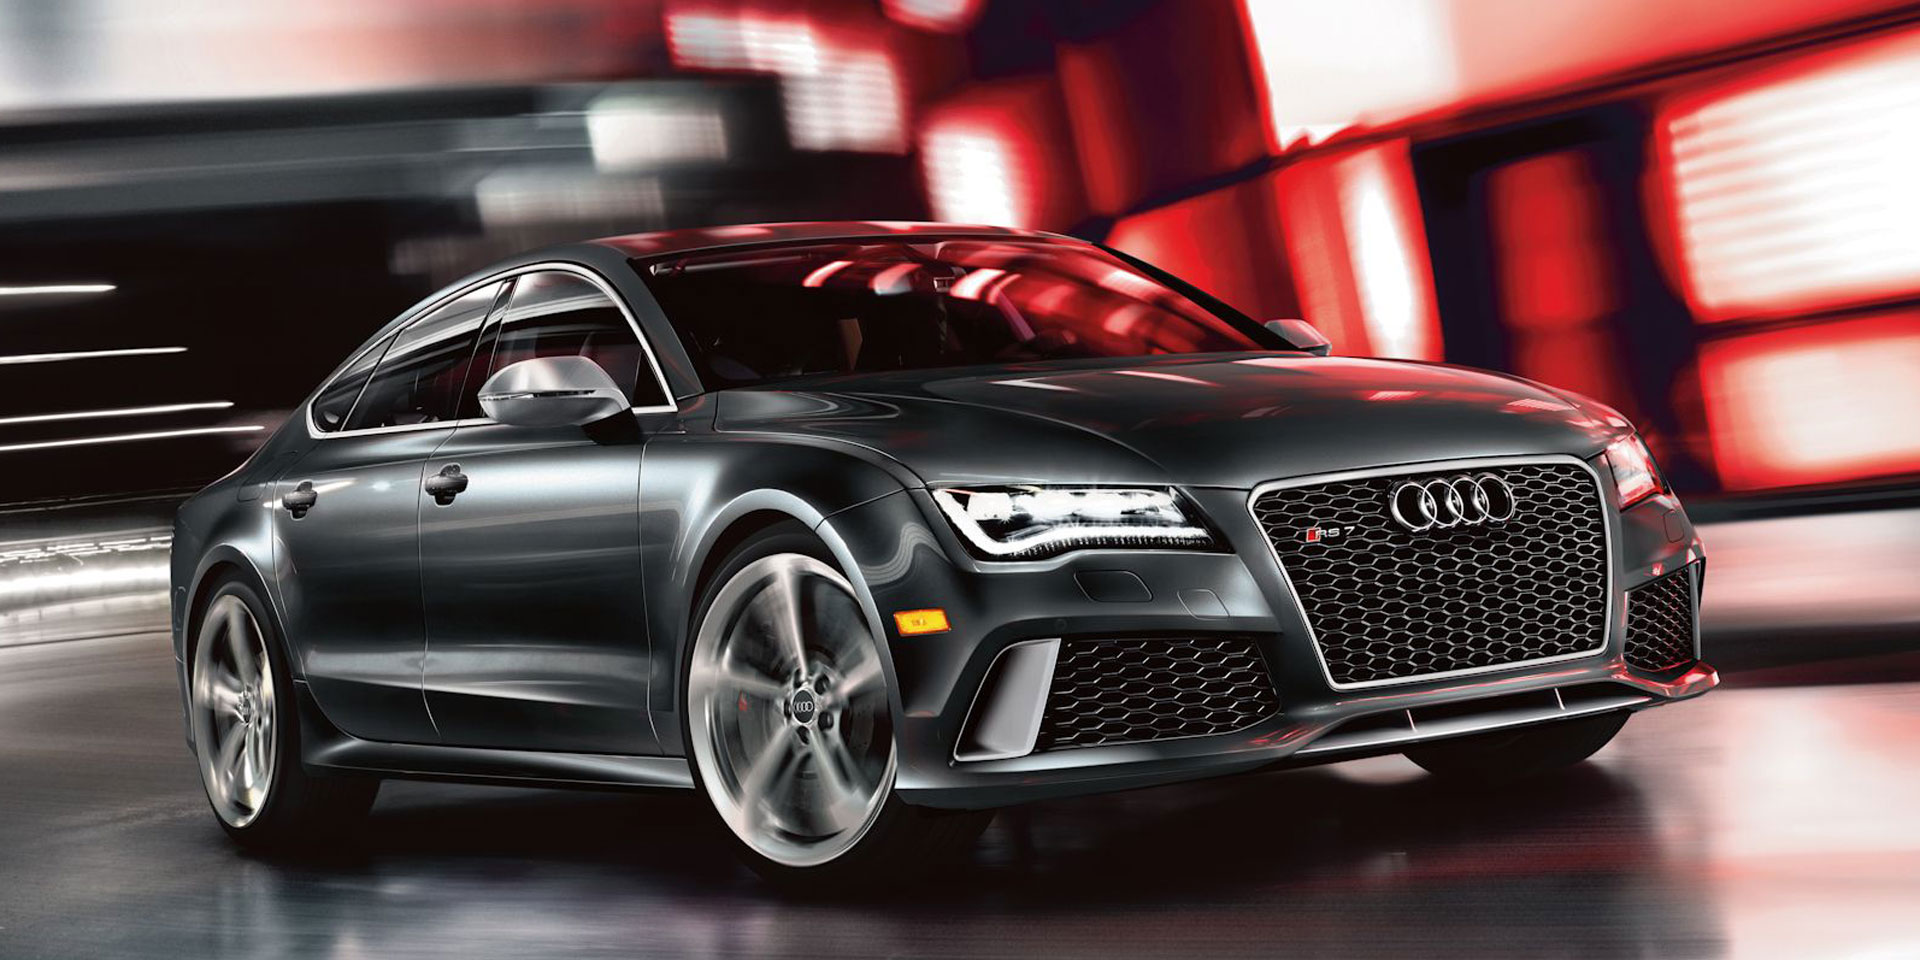 Used Cars For Sale New Cars For Sale Car Dealers Cars Chicago - Audi new series